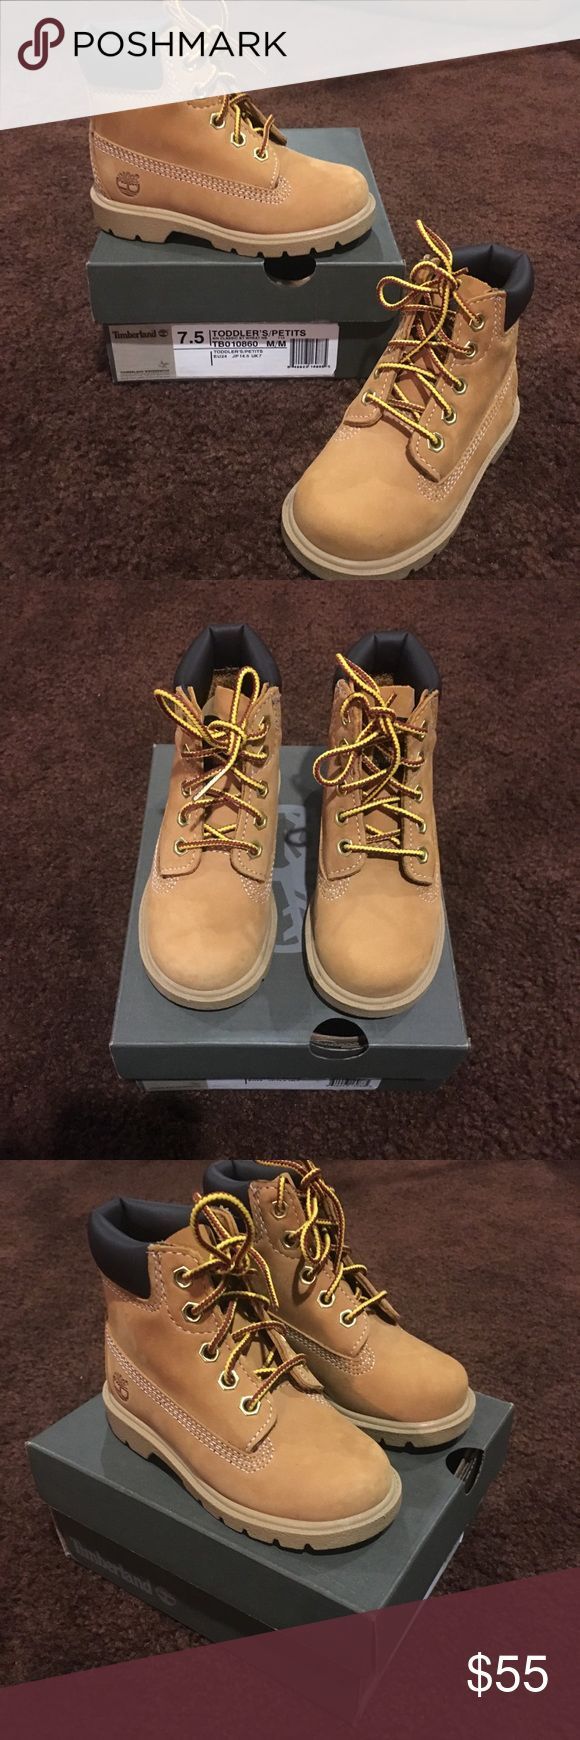 New TIMBERLAND wheat boots kids toddler size 7.5 Worn once for a phot shoot otherwise new. Come with box. Unisex toddler sizing 7.5. Listed twice to show up in both girls and boys sizing - only 1 pair available. Timberland Shoes Boots